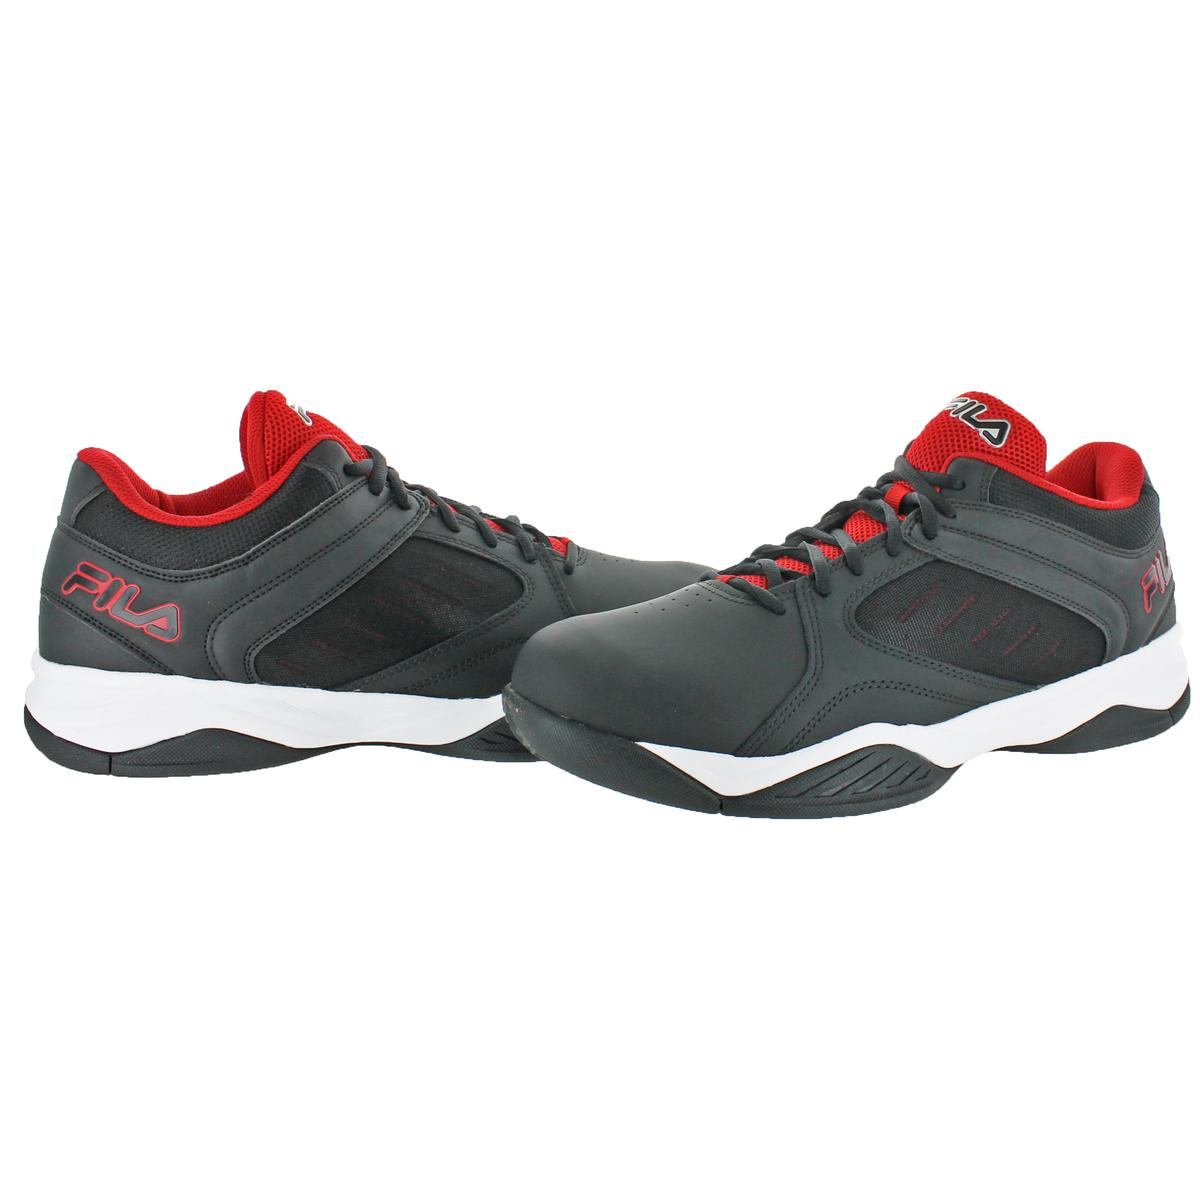 Fila-Men-039-s-Bank-Casual-Lace-Up-Low-Top-Court-Basketball-Athletic-Shoes thumbnail 3